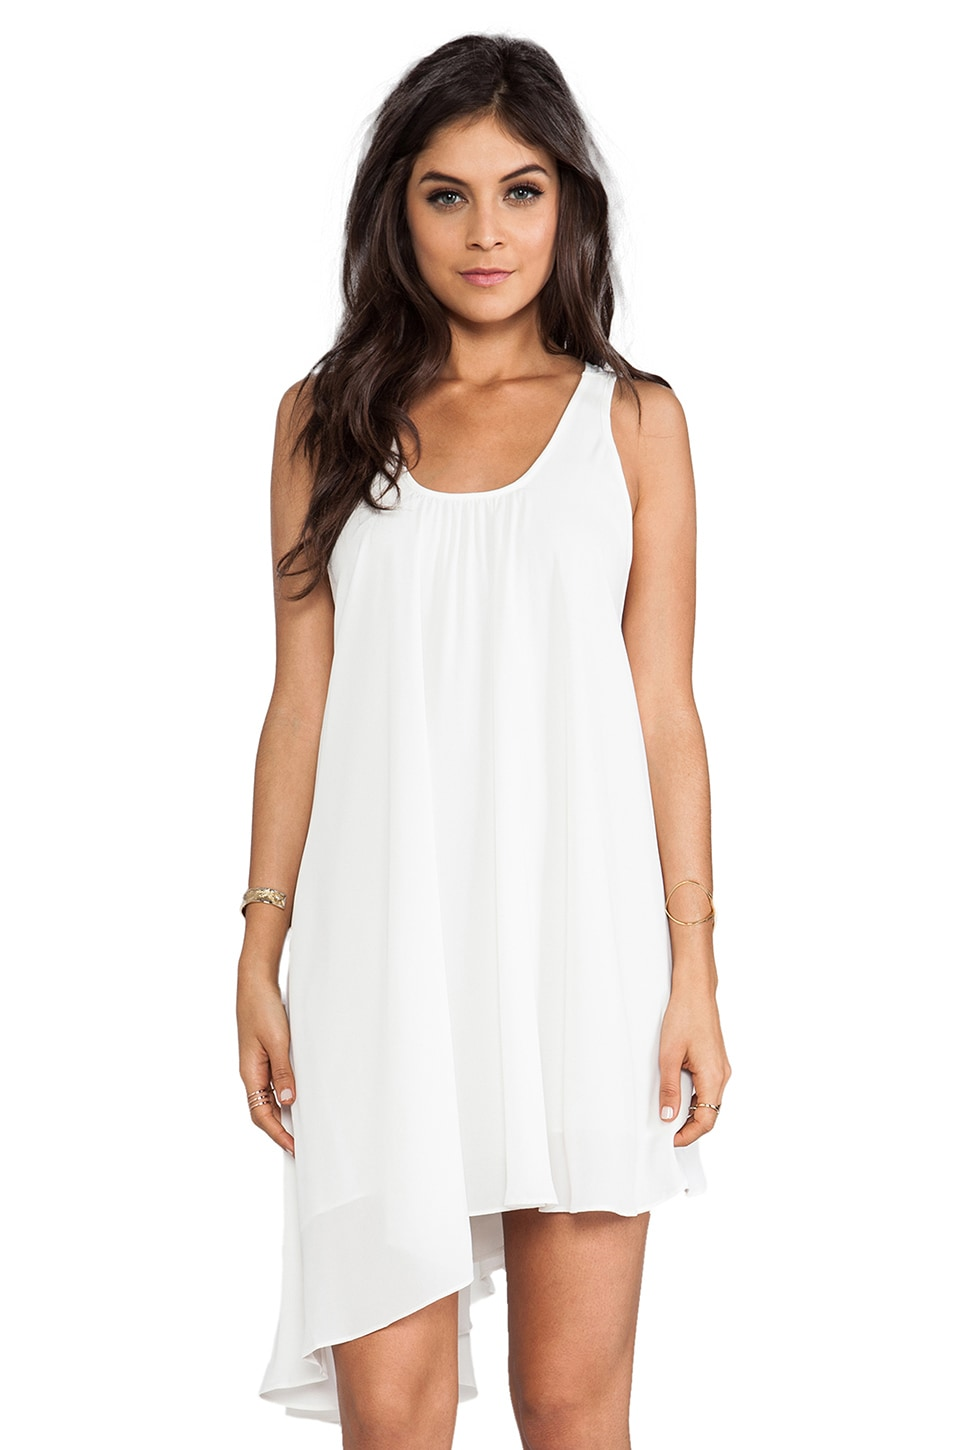 Lovers + Friends Love Potion Dress in White